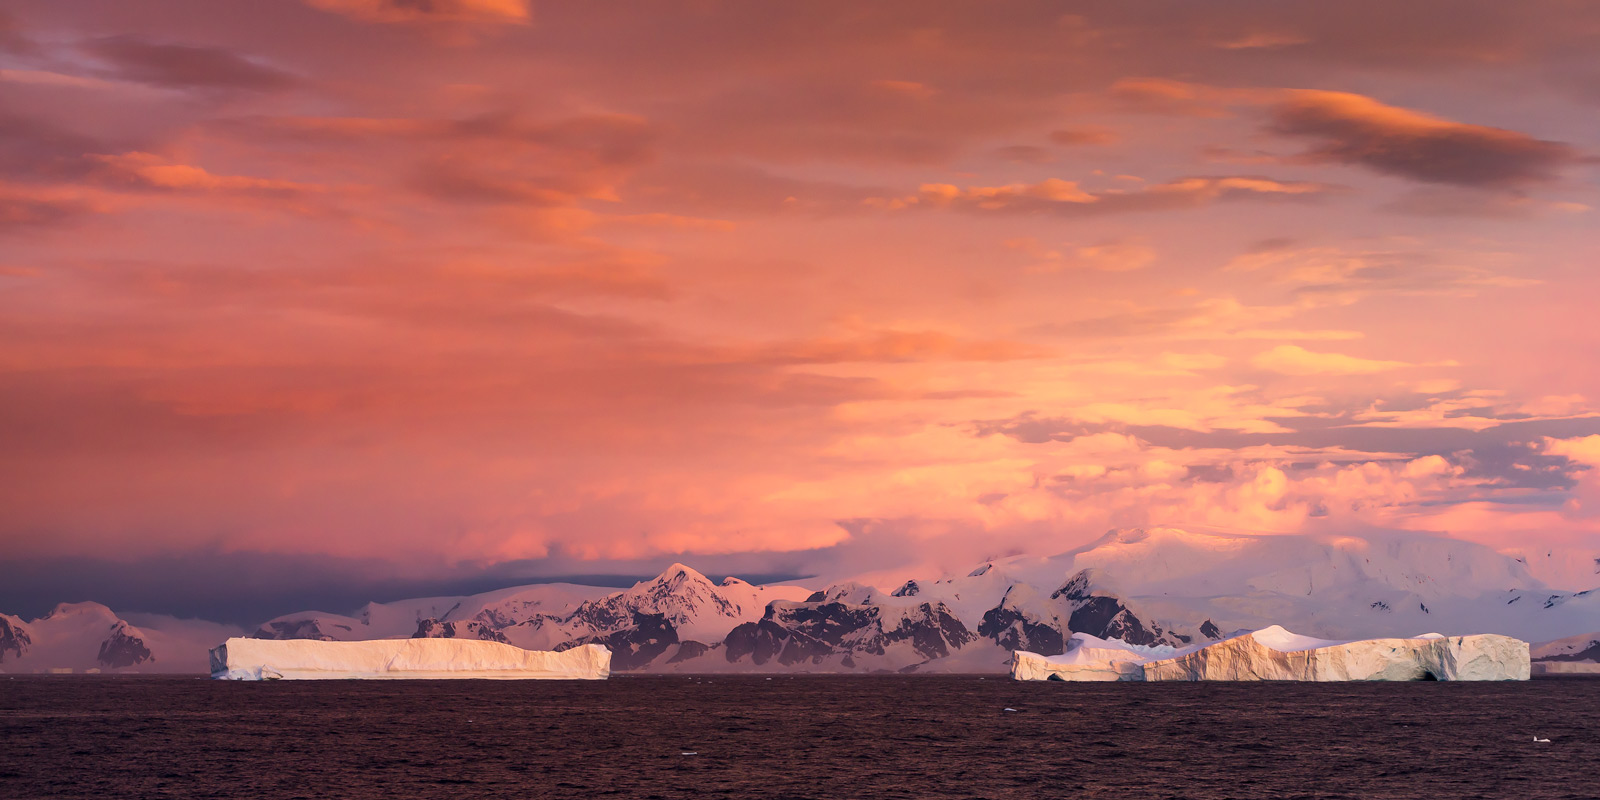 A Limited Edition, Fine Art photograph in Antarctica of a massive tabular iceberg set against a very colorful sunset sky in the...